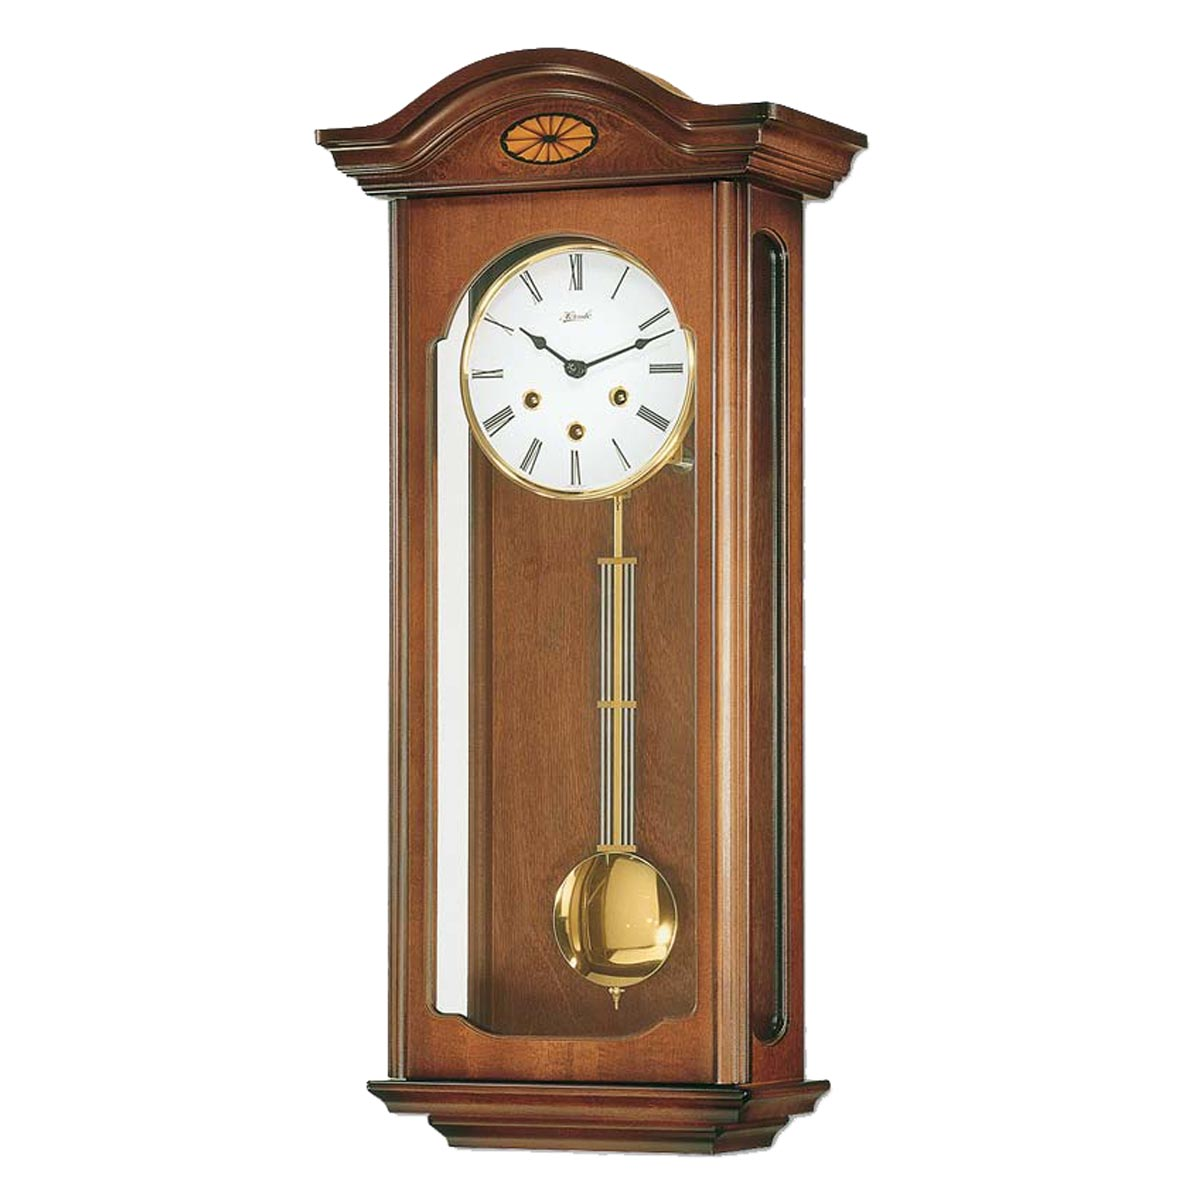 Oxford 70456 030341 regulator wall clock hermle oxford 70456 030341 regulator wall clock amipublicfo Image collections